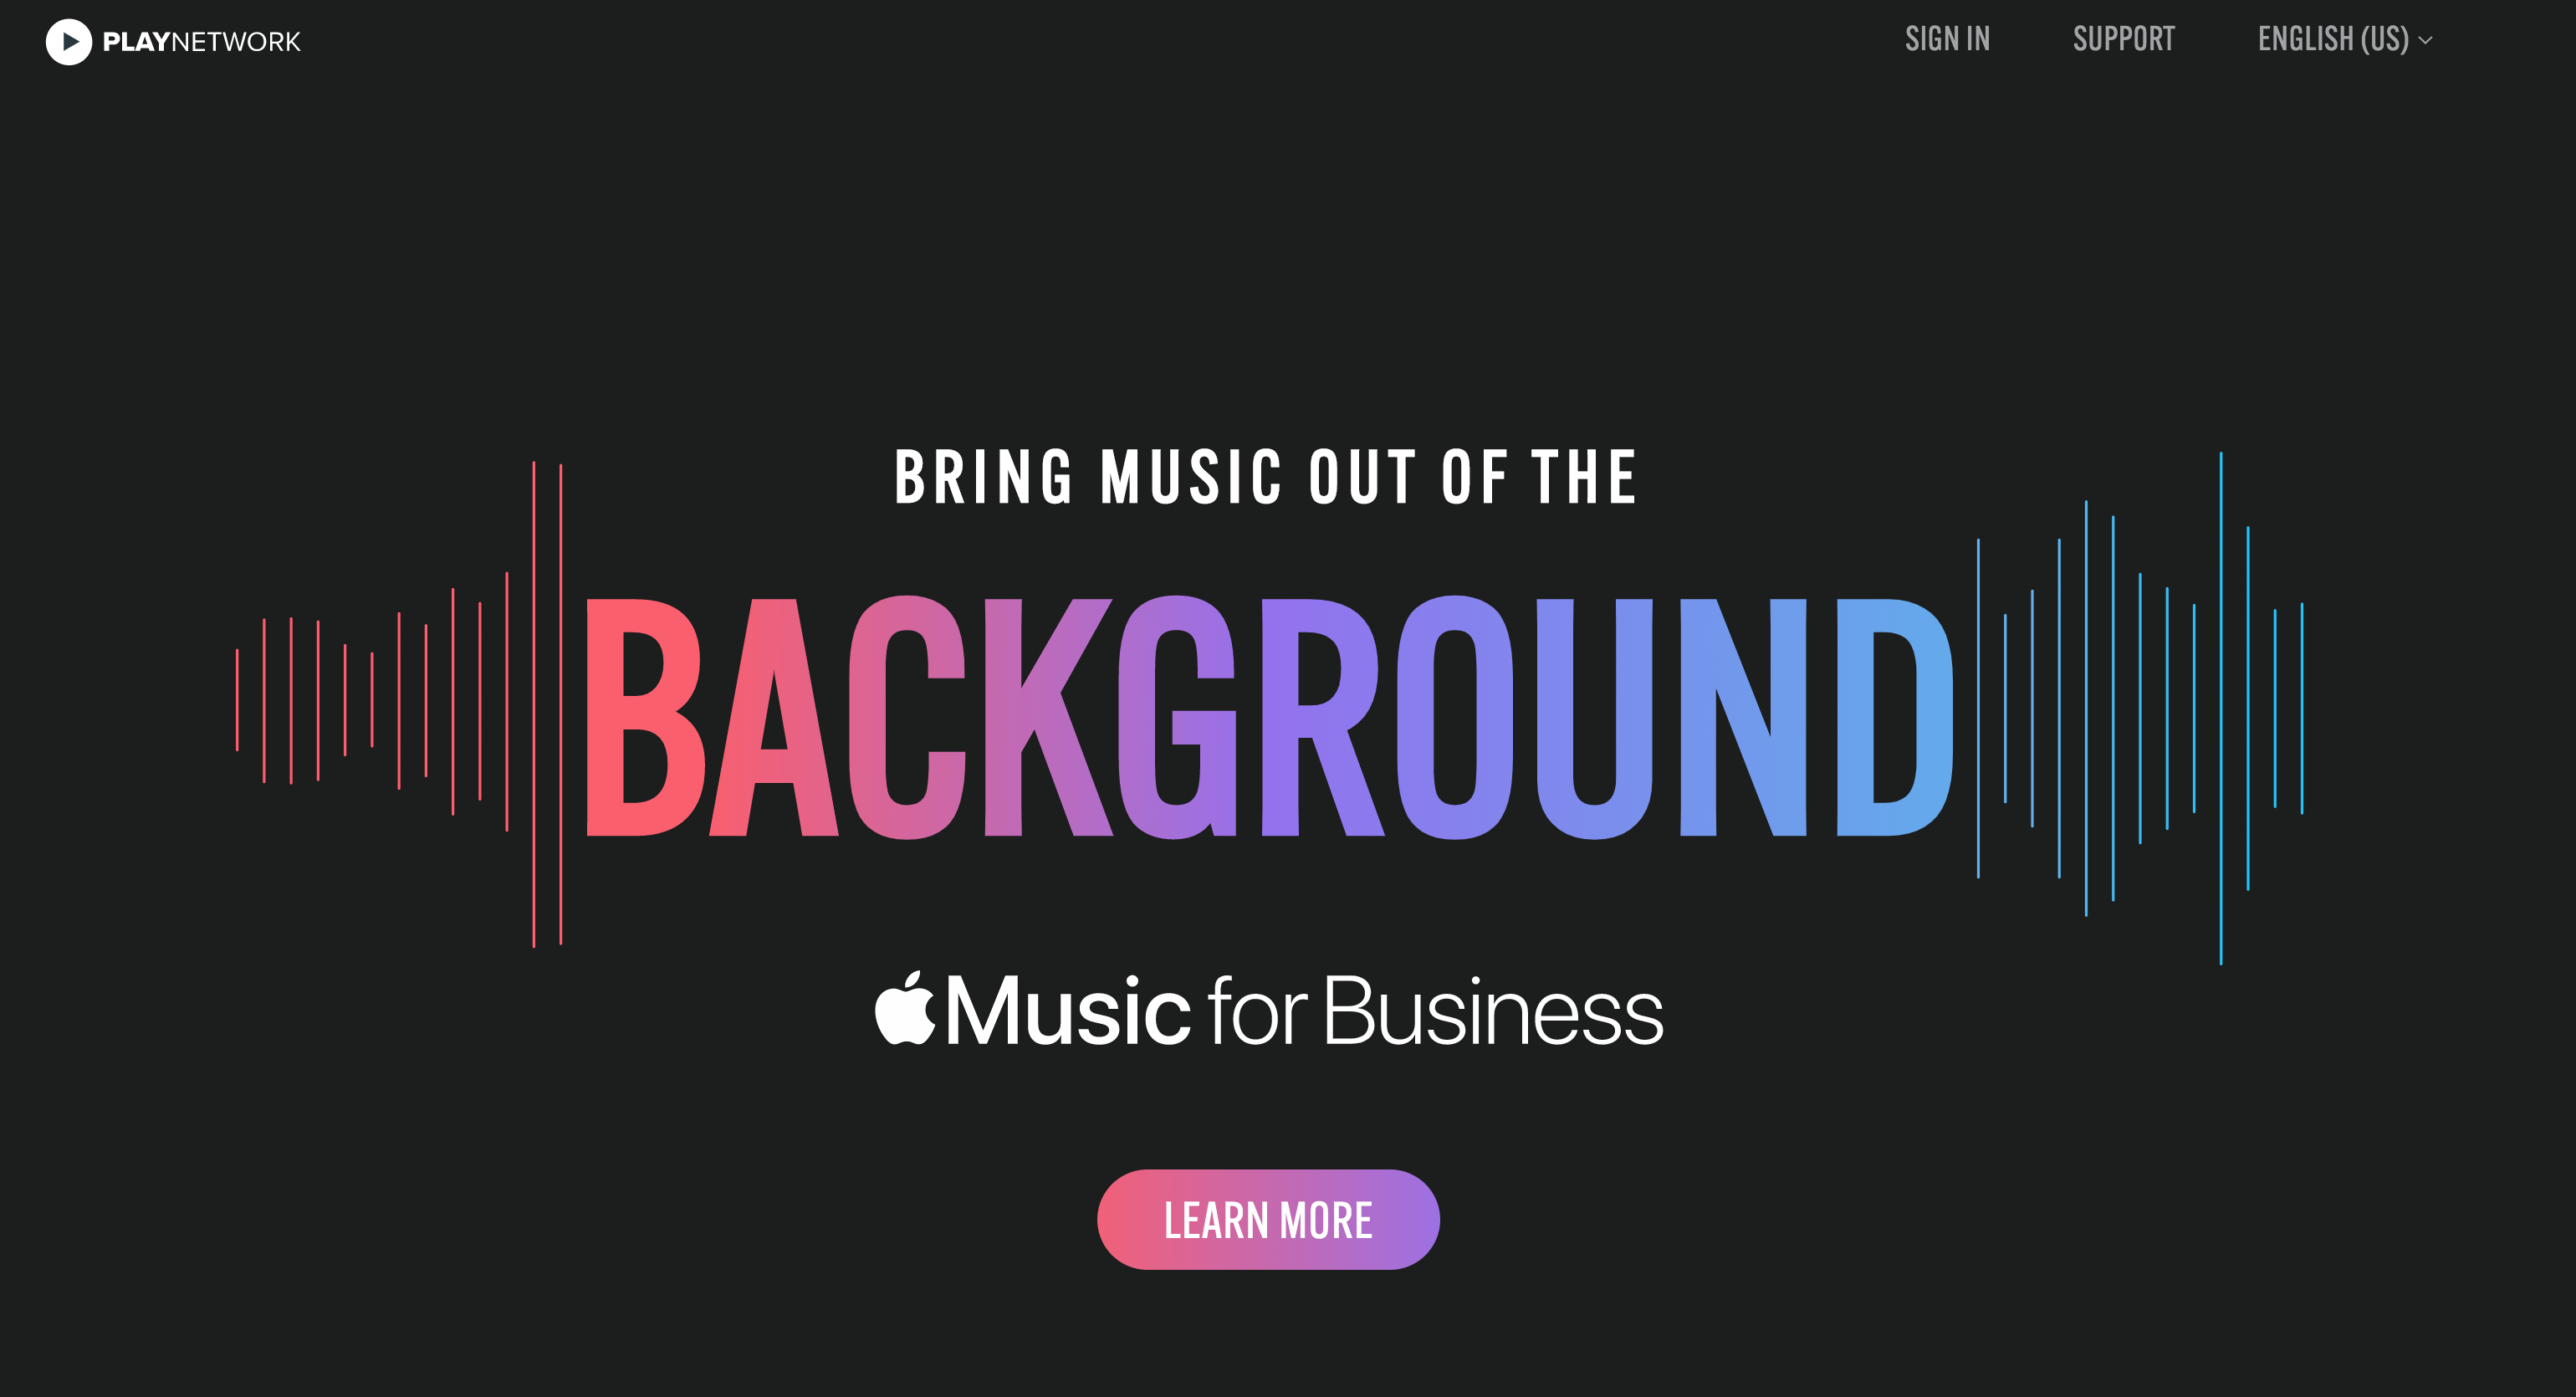 Going into the business market for Apple's music program